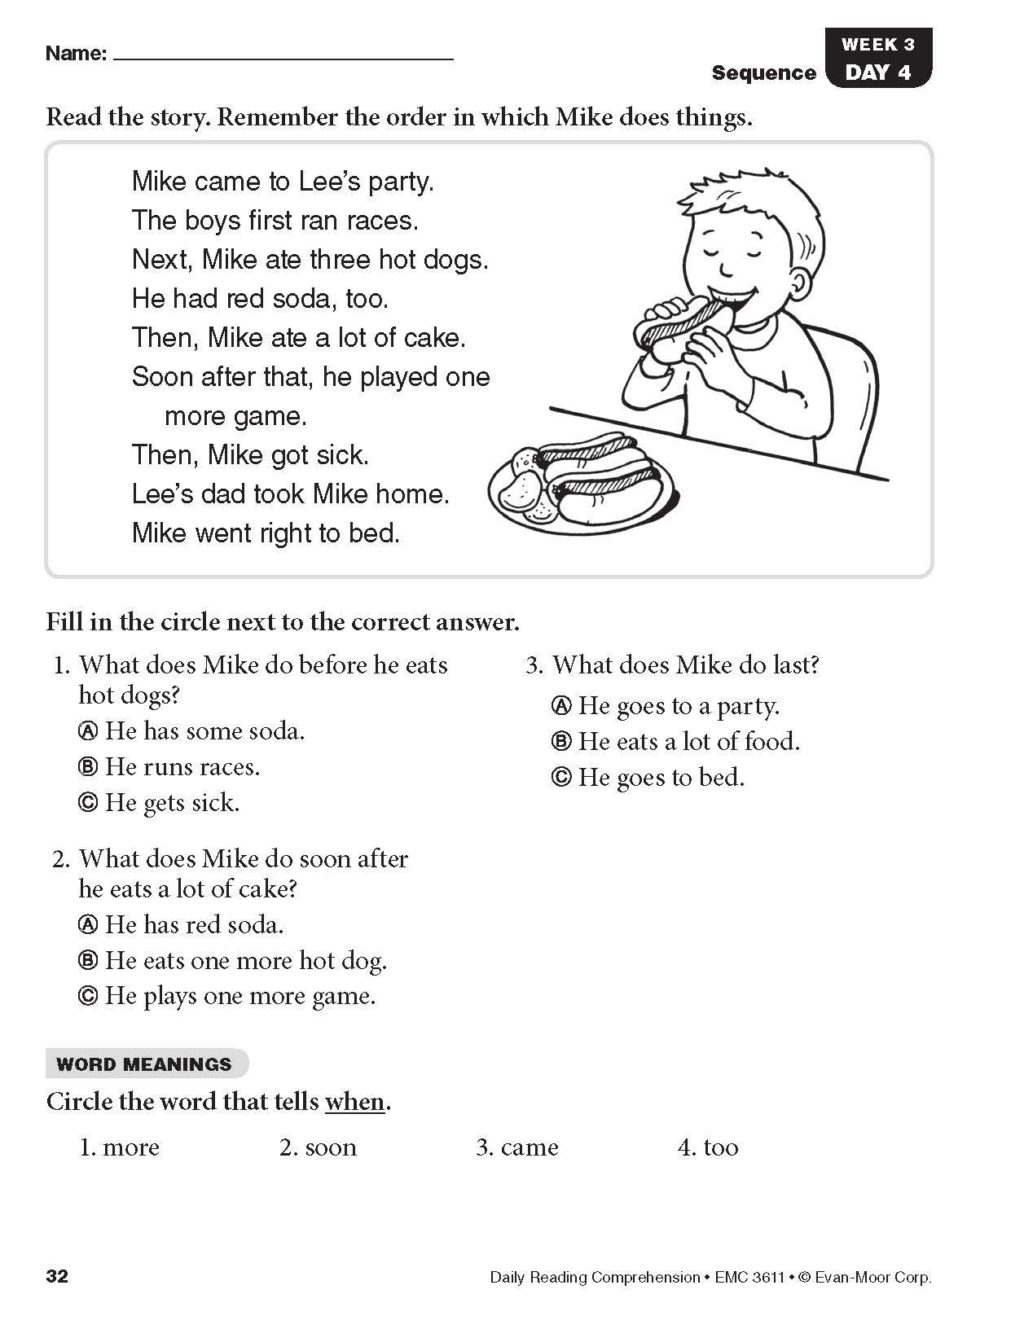 Daily Reading Comprehension Grade 4 Pdf Free Download